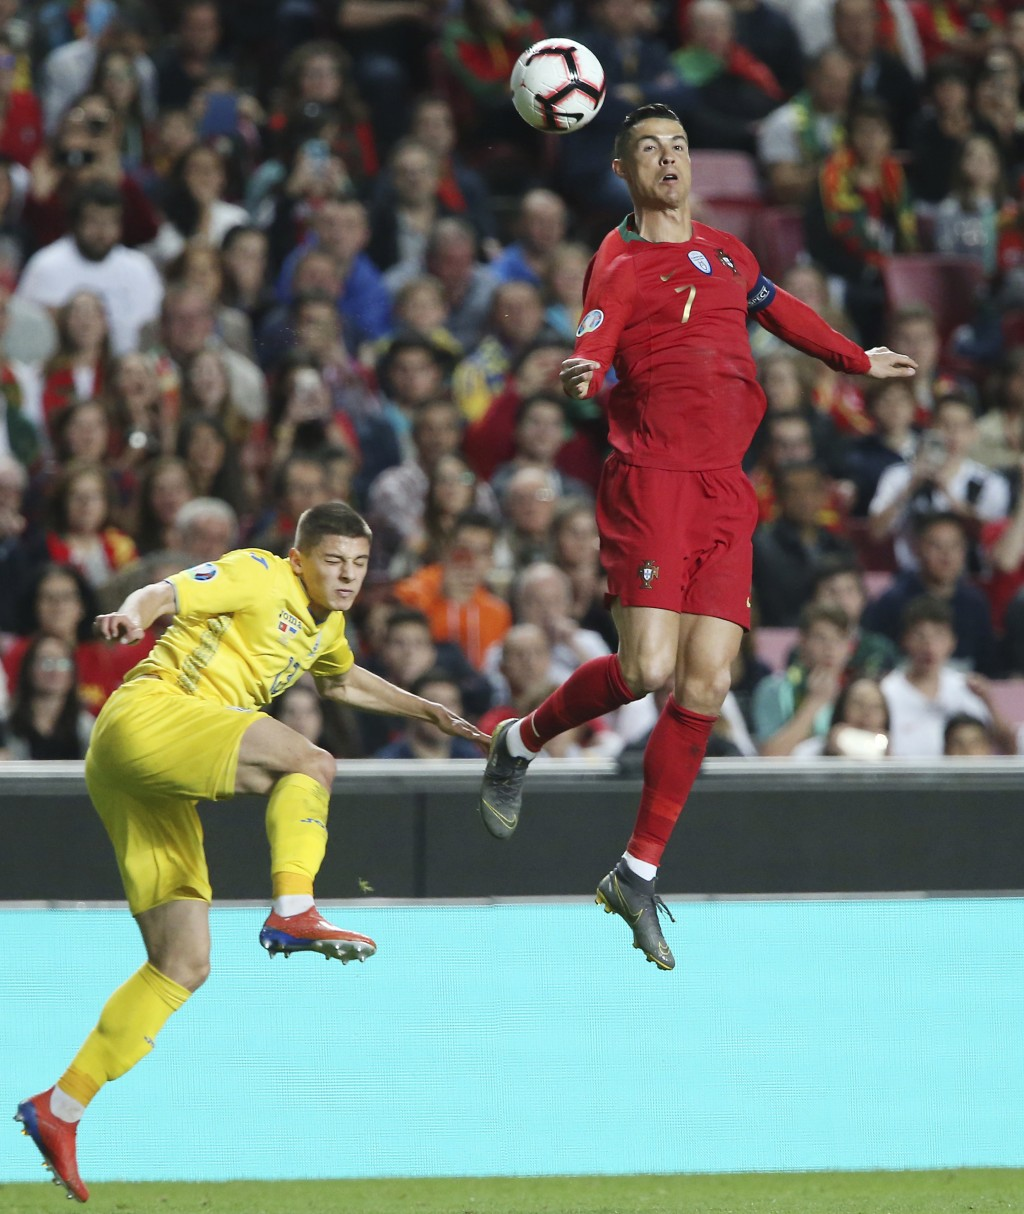 Portugal's Cristiano Ronaldo, right, challenges for the ball with Ukraine's Vitaliy Mykolenko during the Euro 2020 group B qualifying soccer match bet...